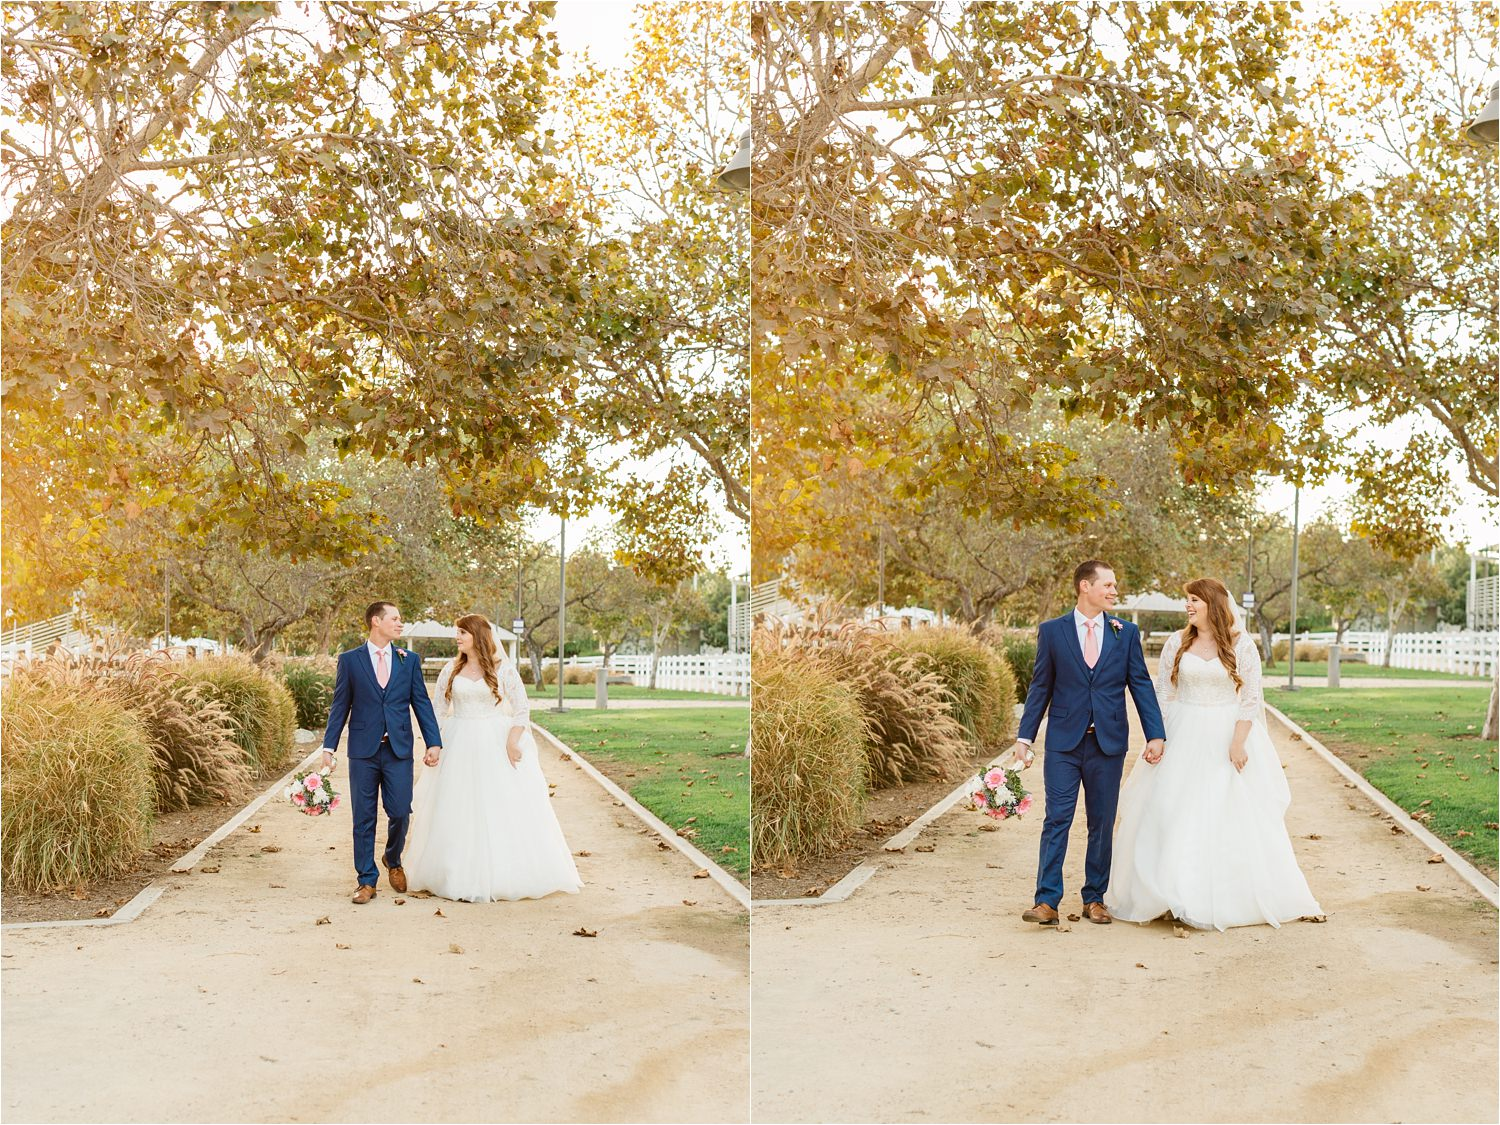 Super sweet bride and groom portraits - Romantic and Sweet Wedding Photography - https://brittneyhannonphotography.com